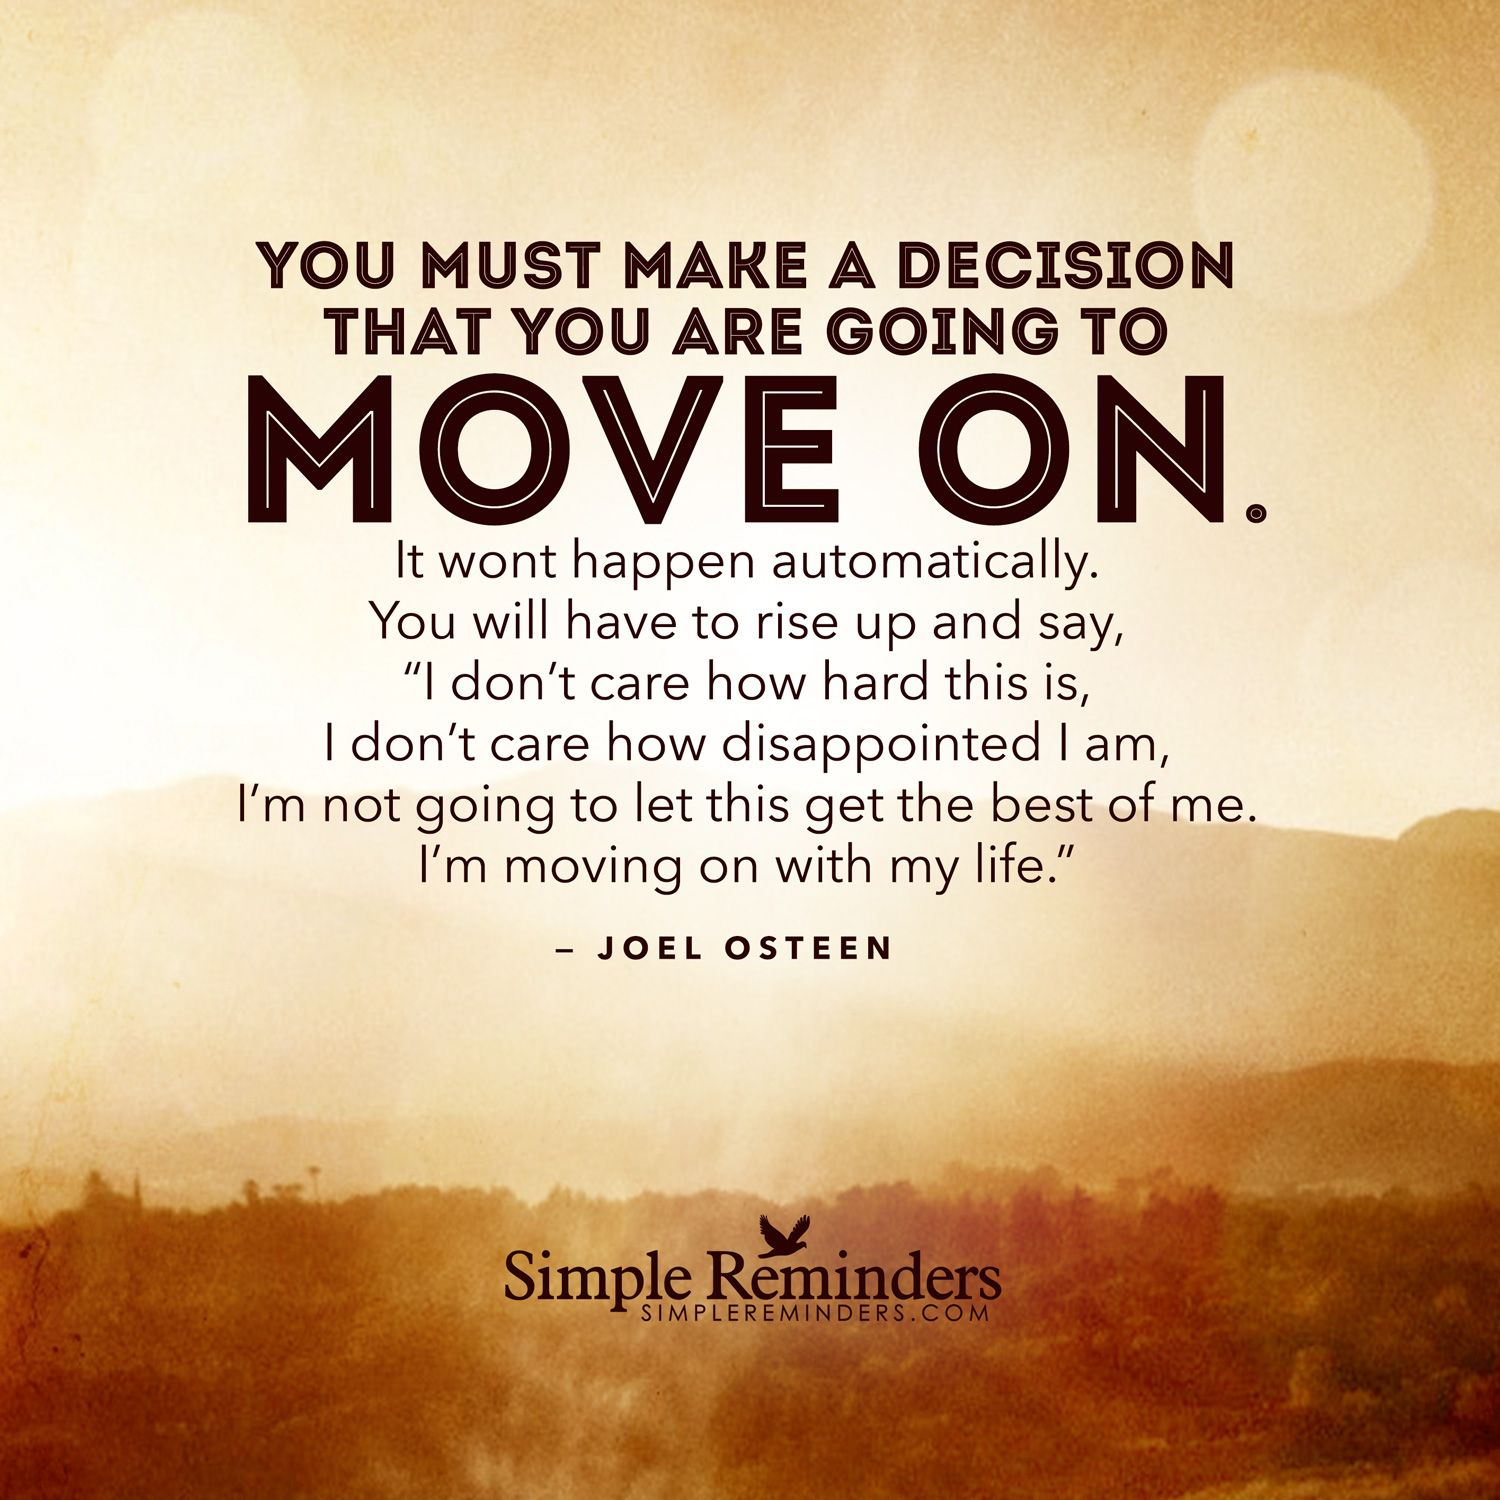 You must make a decision that you are going to move on. It